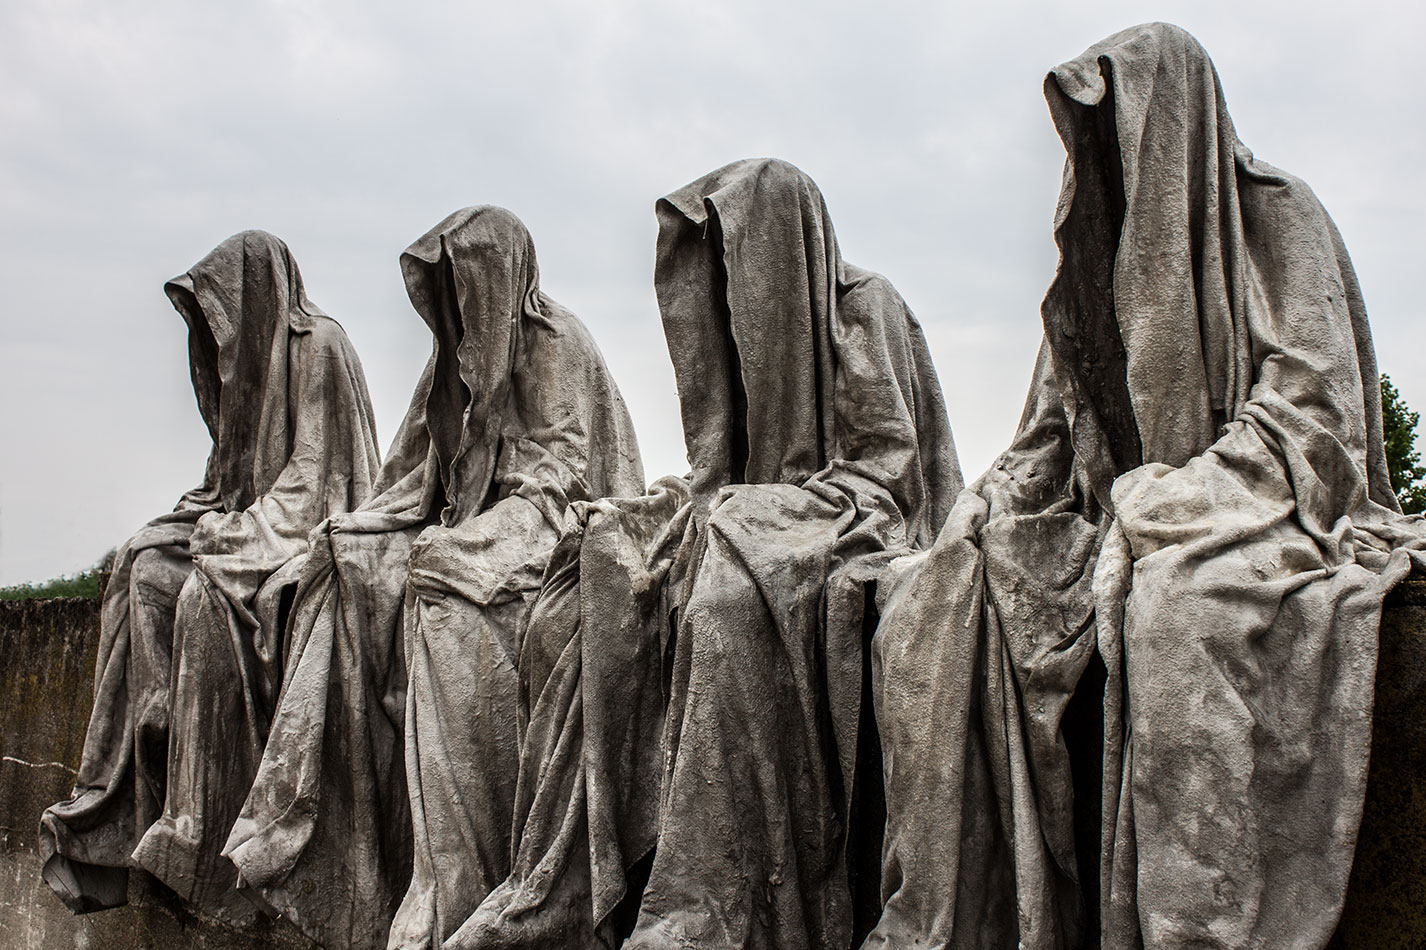 mobile-gallery-guardians-of-time-sculptor-manfred-kili-kielnhofer-contemporary-fine-art-design-sculpture-modern-famous-3d-statue-public-arts-2615